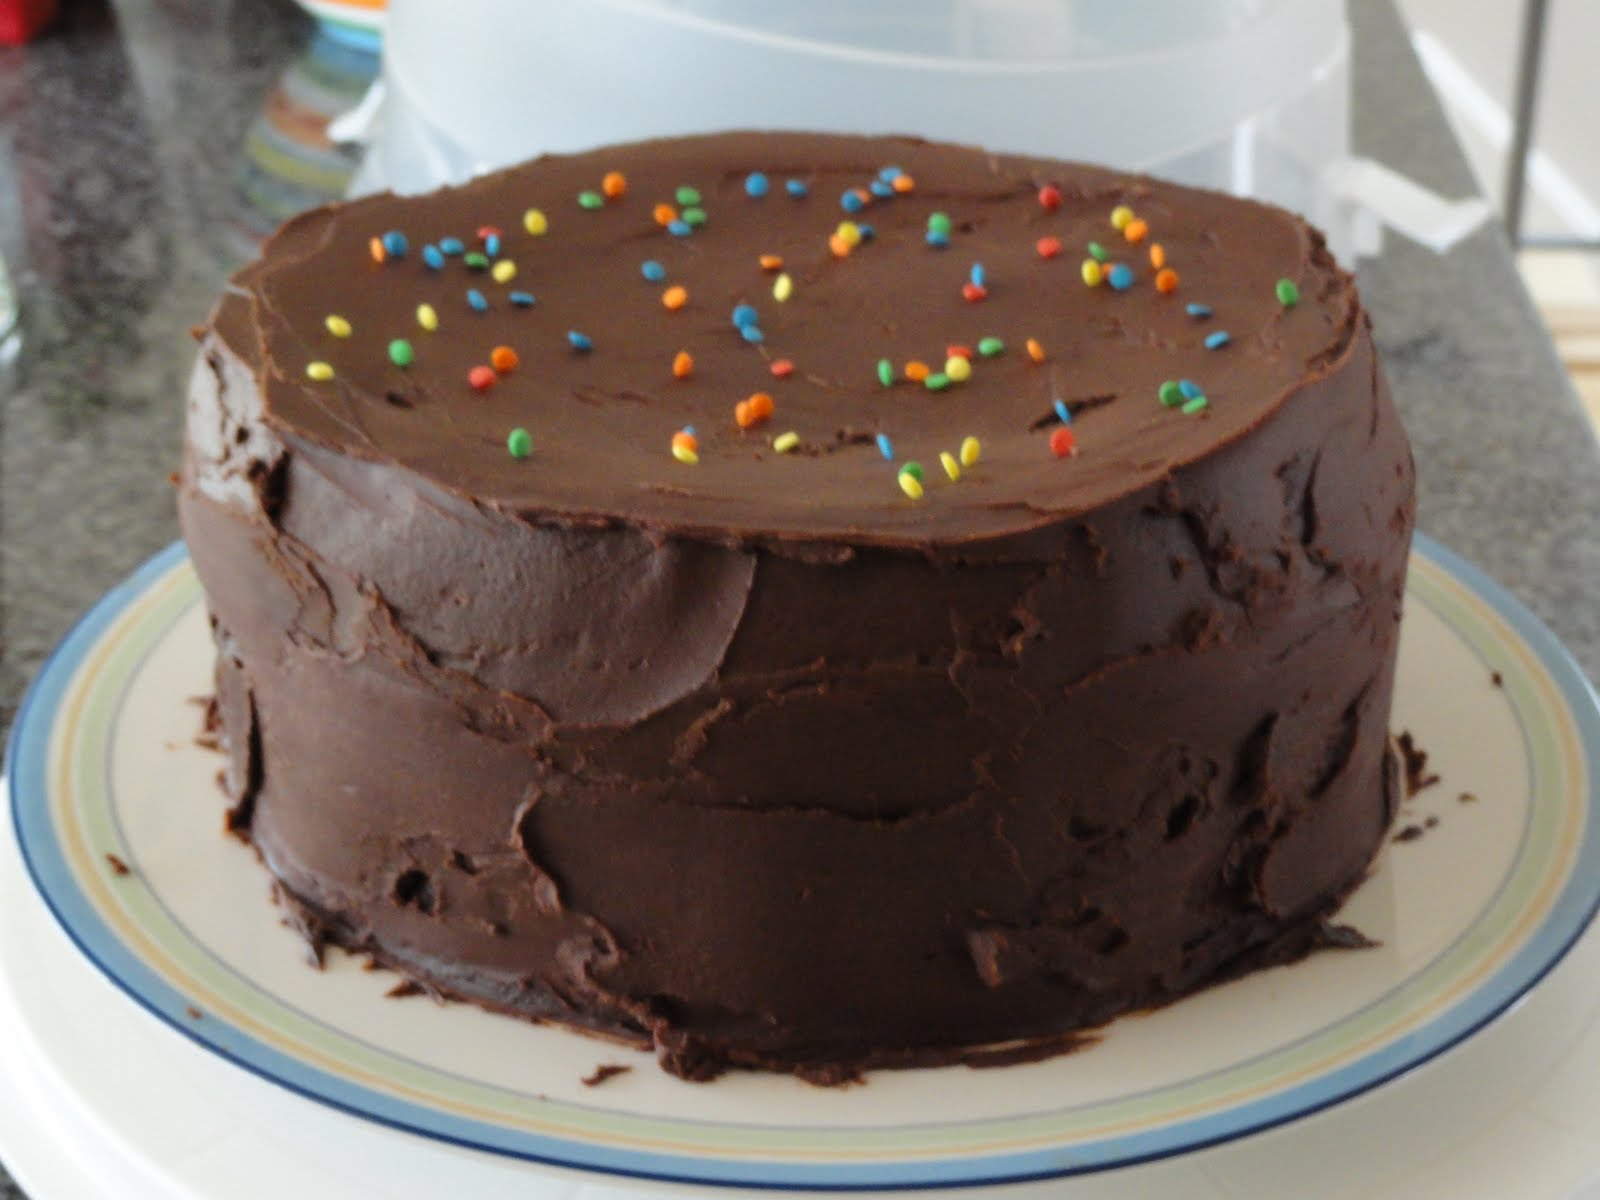 Caitlin's Cookbook: Dad's Birthday Chocolate Cake